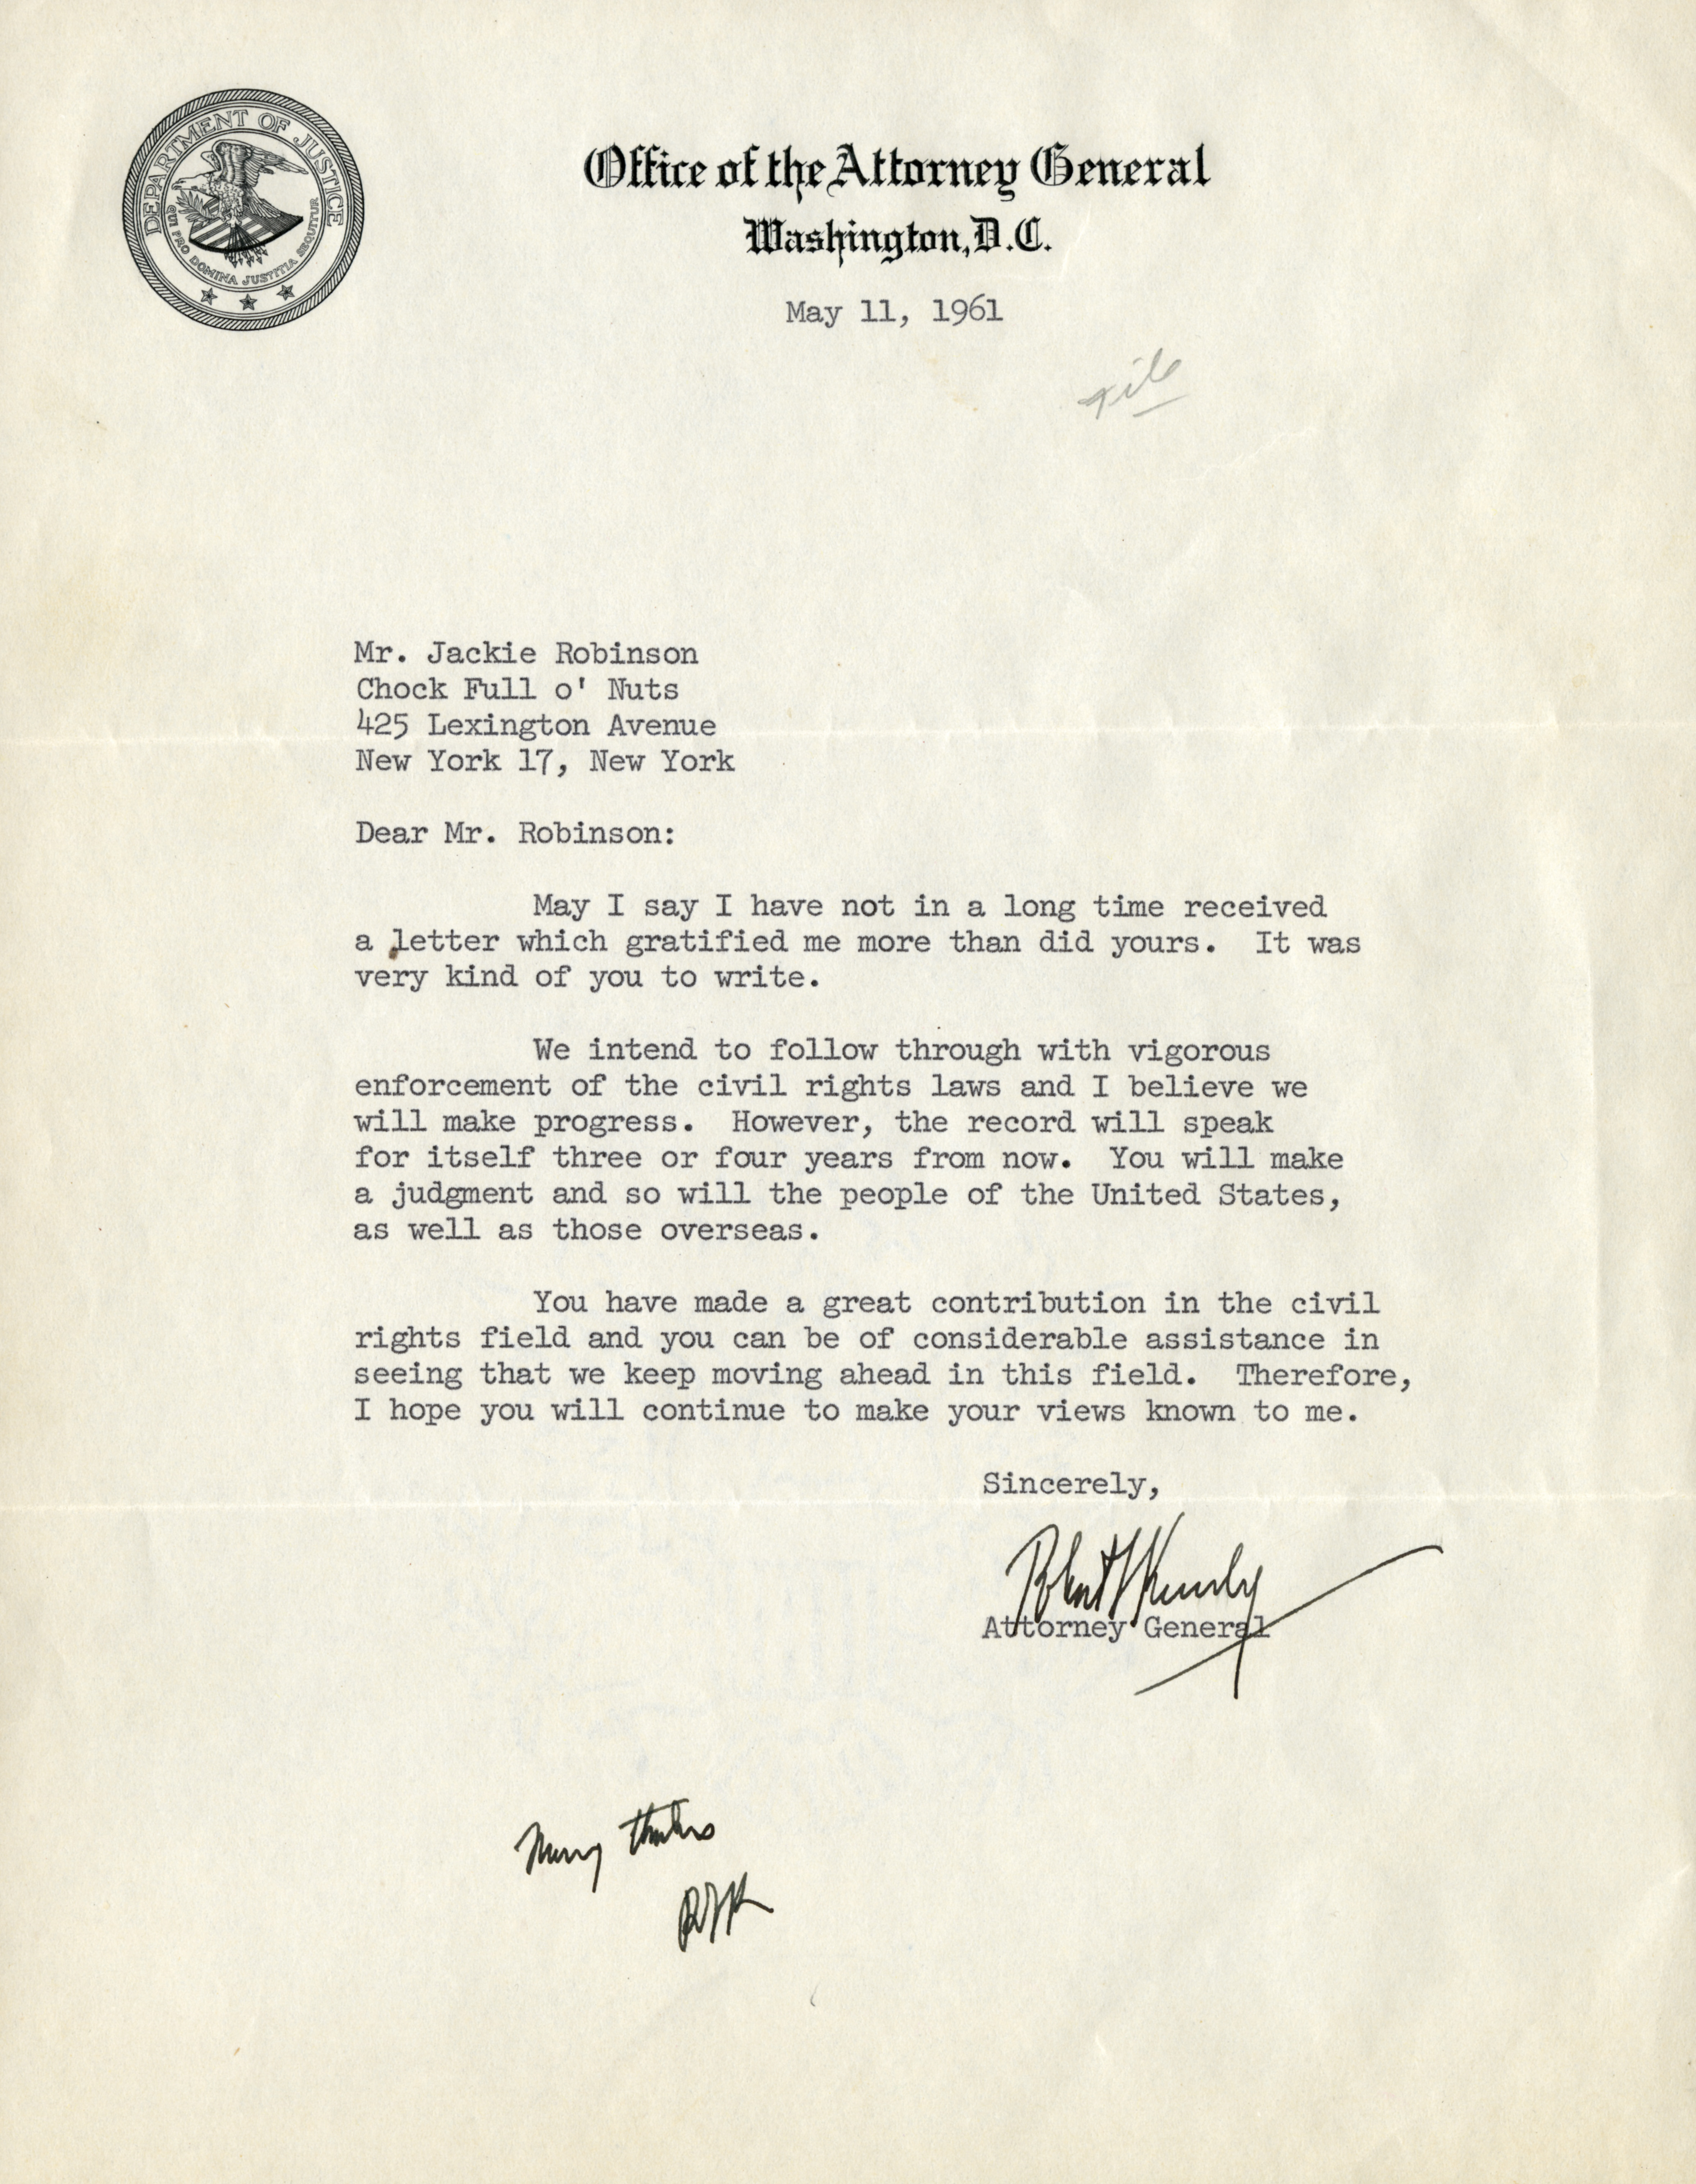 Letter to Jackie Robinson from Robert Kennedy, May 11, 1961. (The Gilder Lehrman Institute, GLC09754.06)